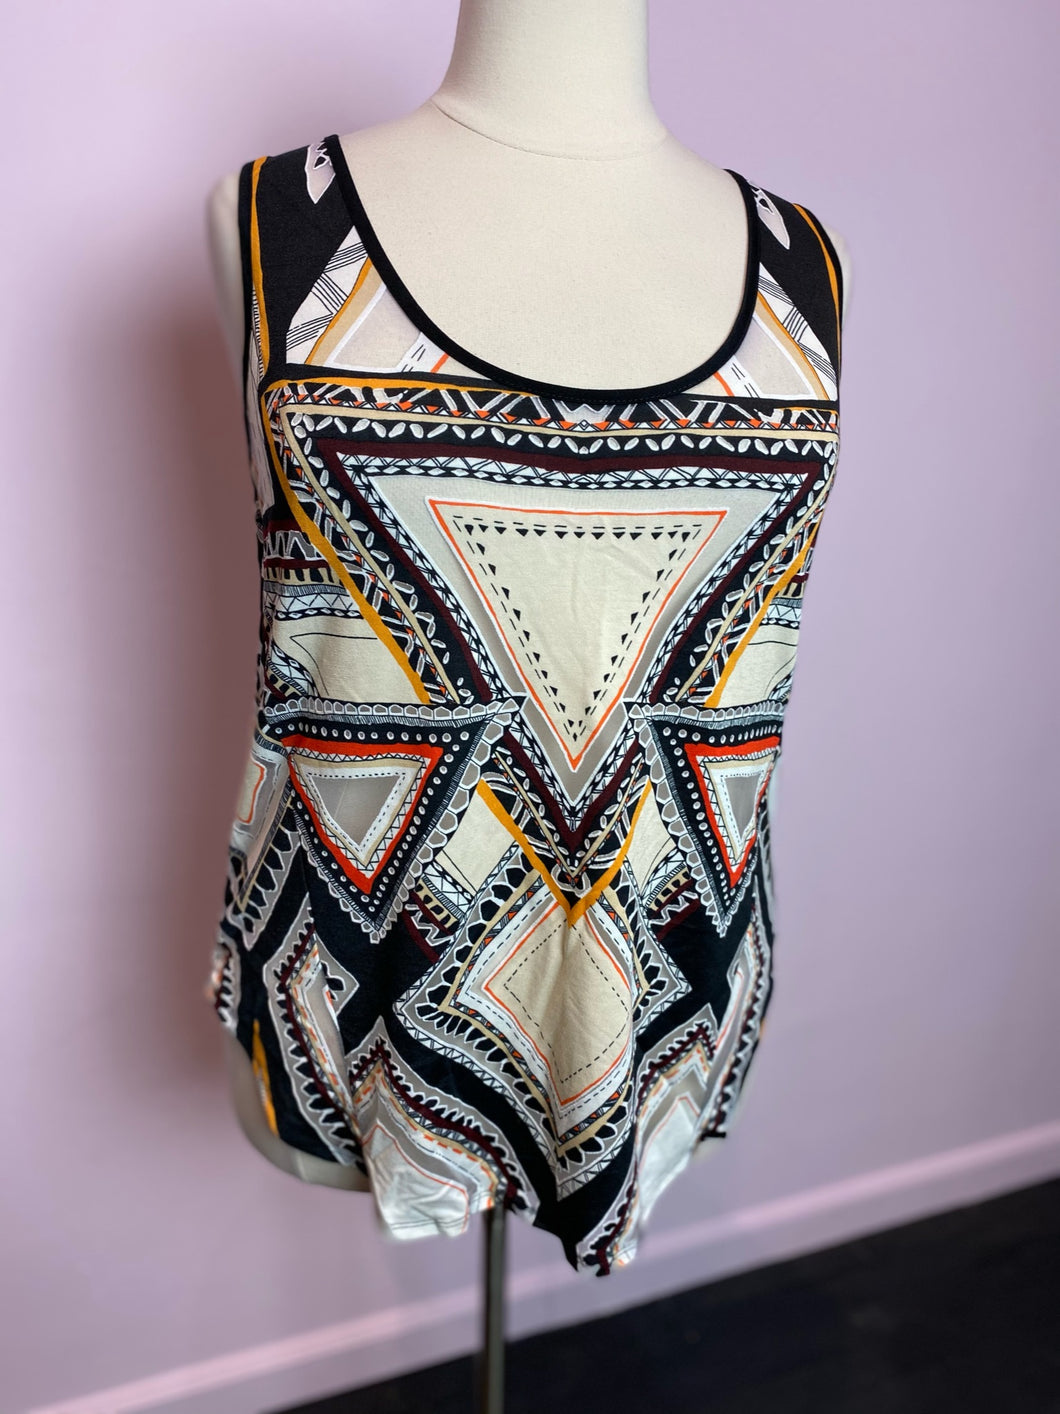 Multicolor Geometric Mossimo Tunic with Sheer Panels, Size 2X